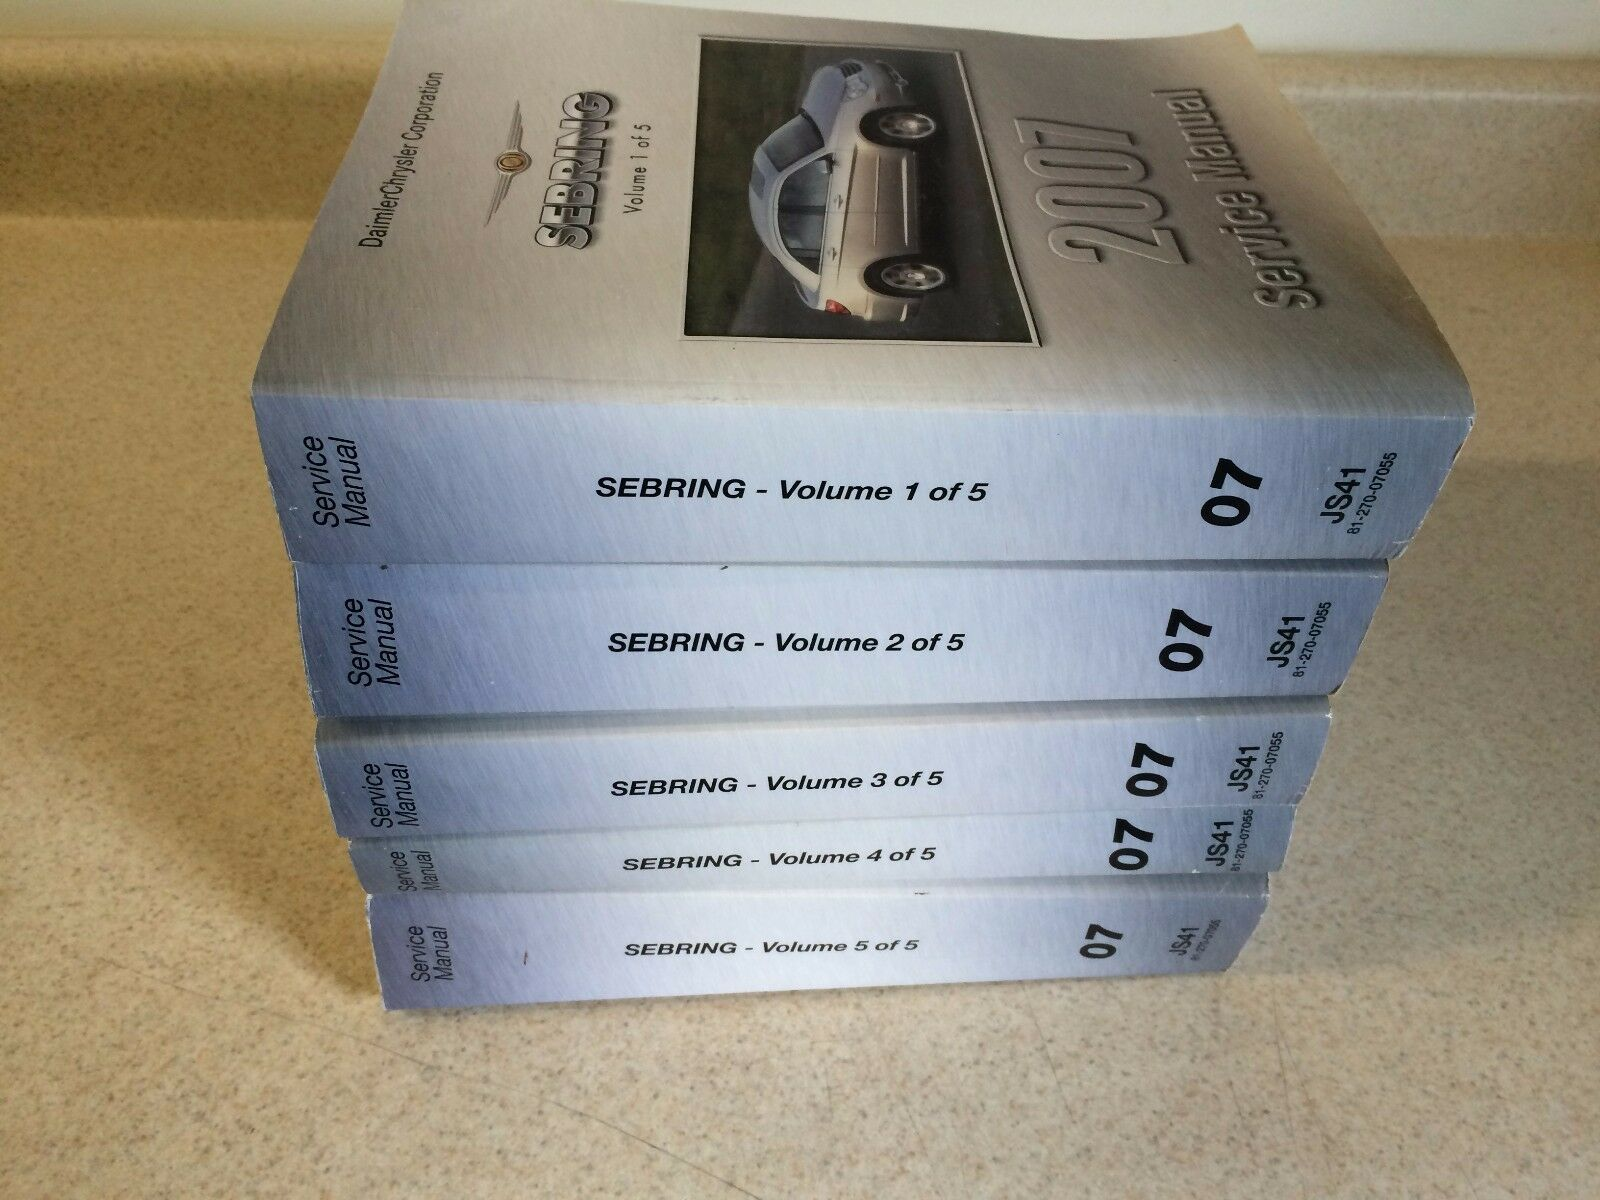 2007 Chrysler Sebring Service Workshop Repair Shop Manual 8127007055 1 of  3Only 1 available ...